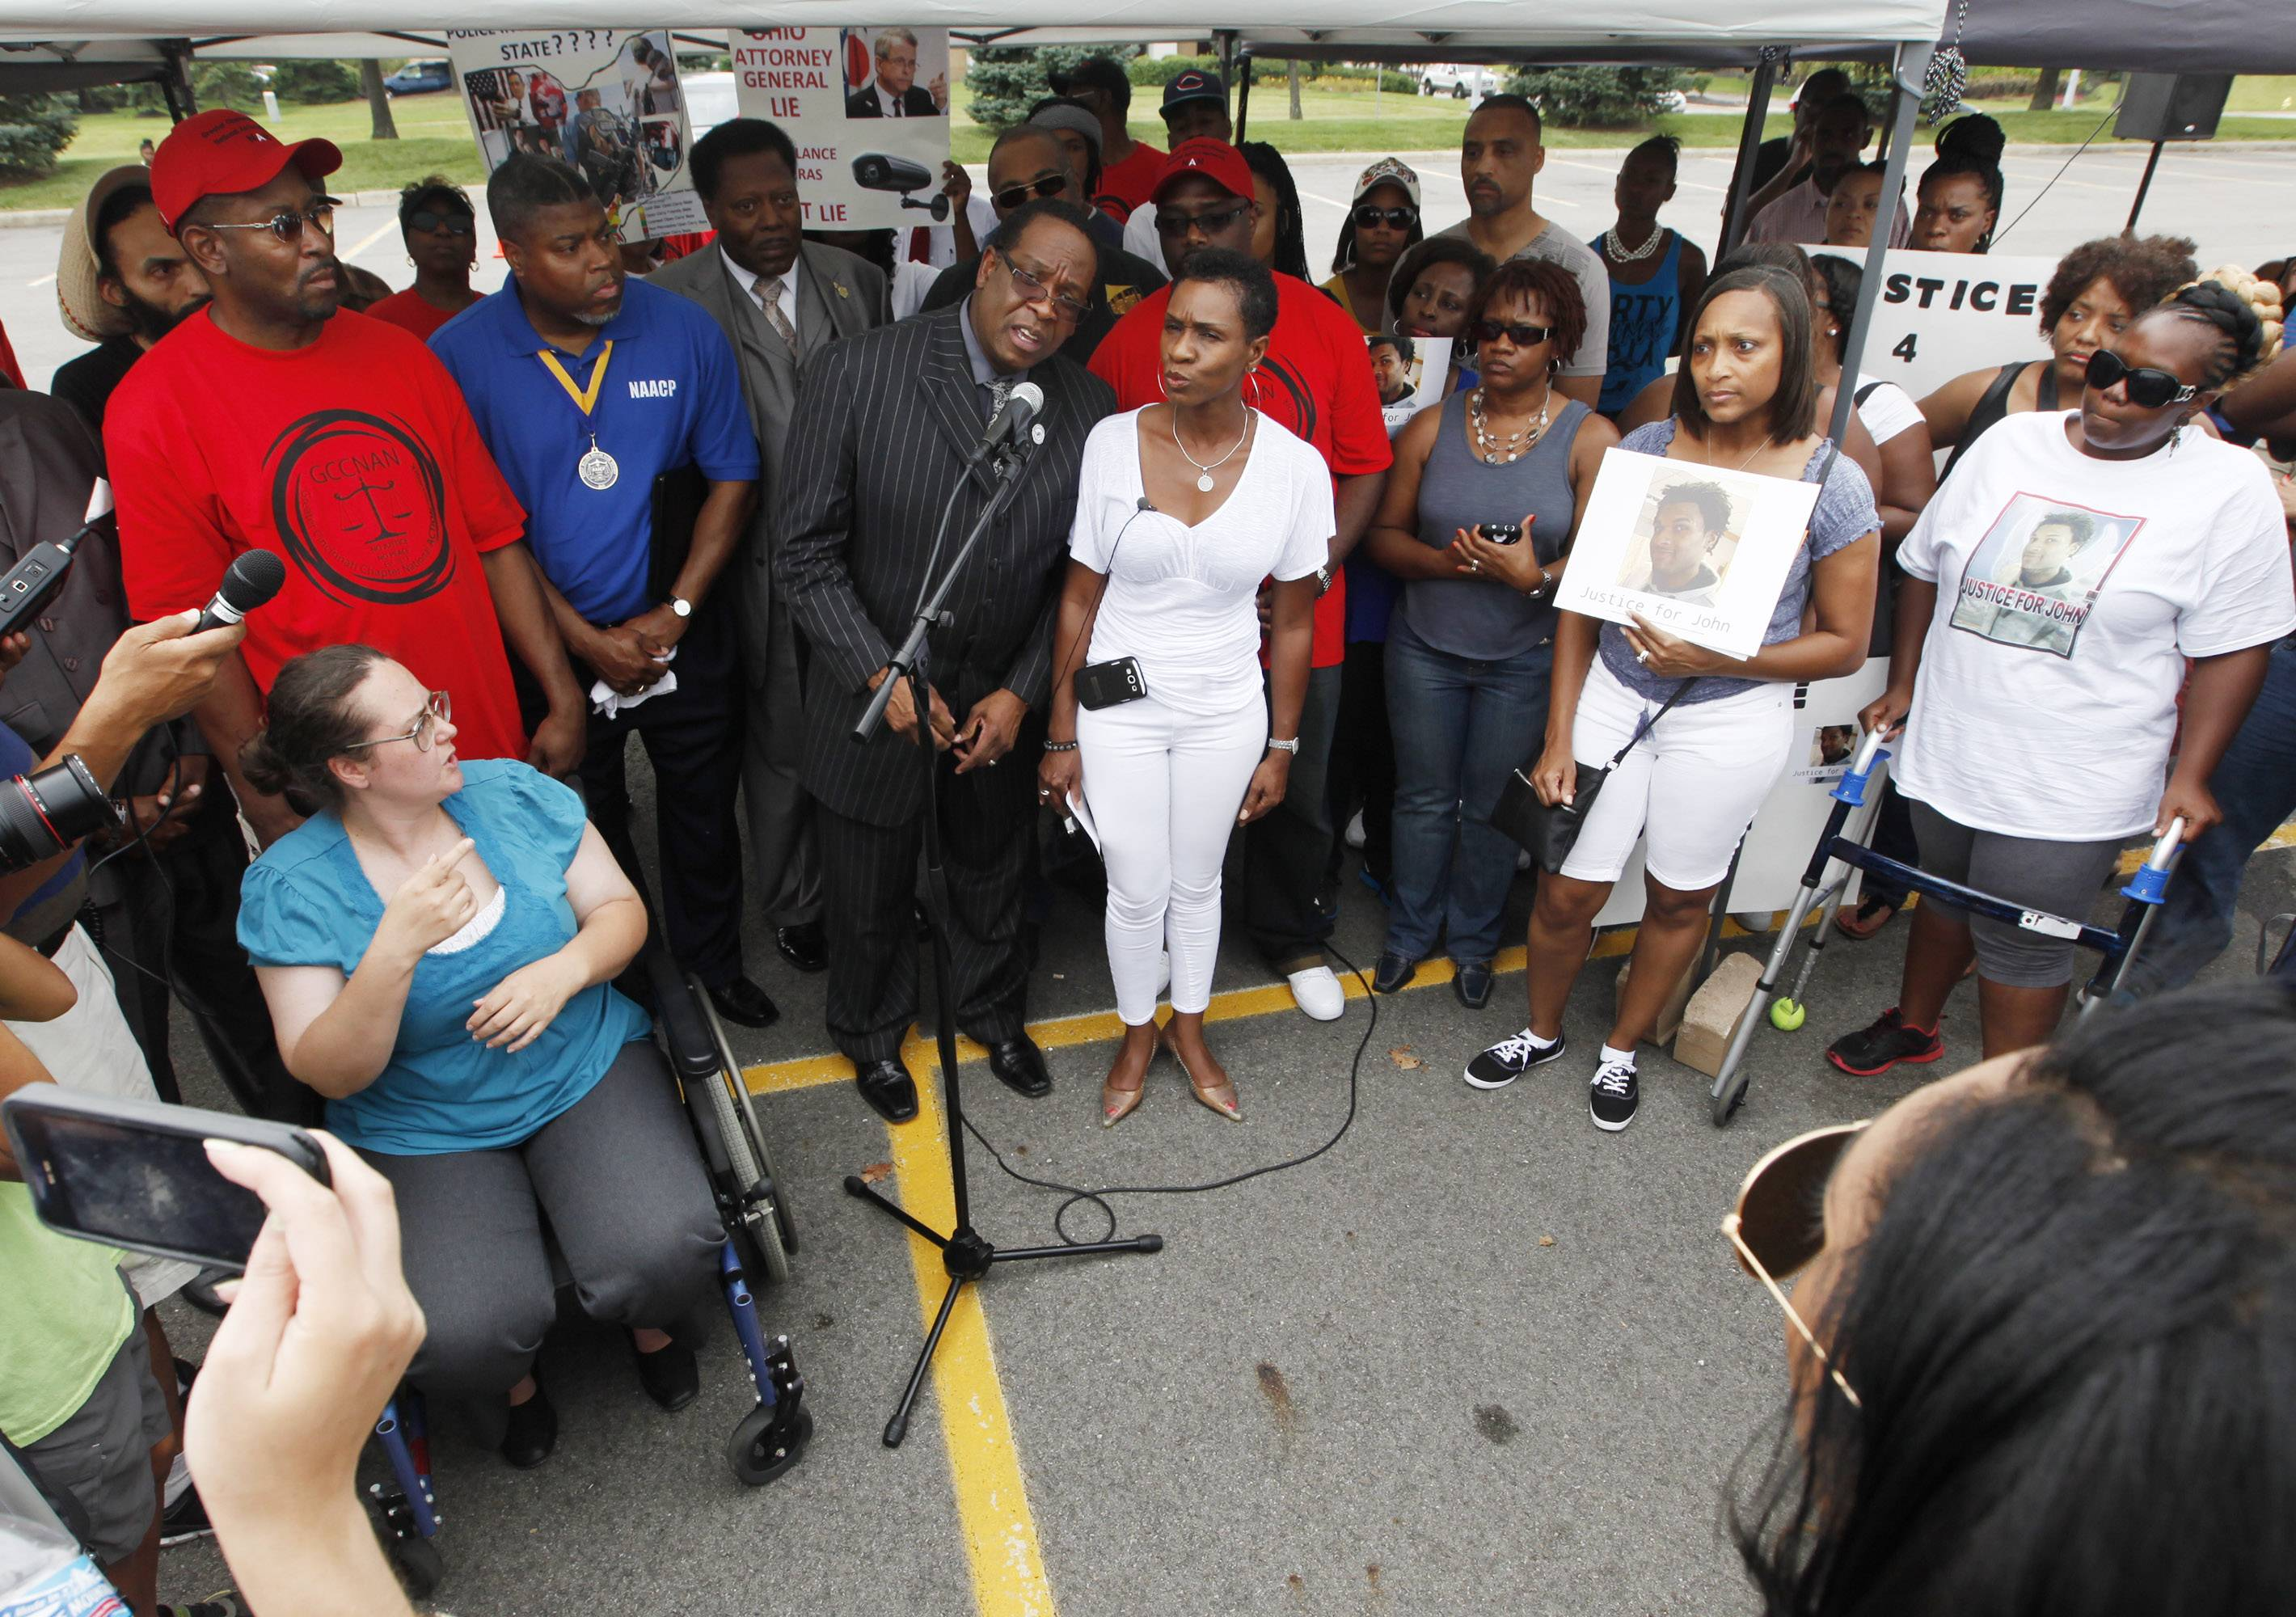 Bishop Bobby Hilton, center left at microphone, and Sharon Sherrod-Brown, aunt of John Crawford III, center right, take questions Saturday after a rally for Crawford in front of a Wal-Mart store in Beavercreek, Ohio.